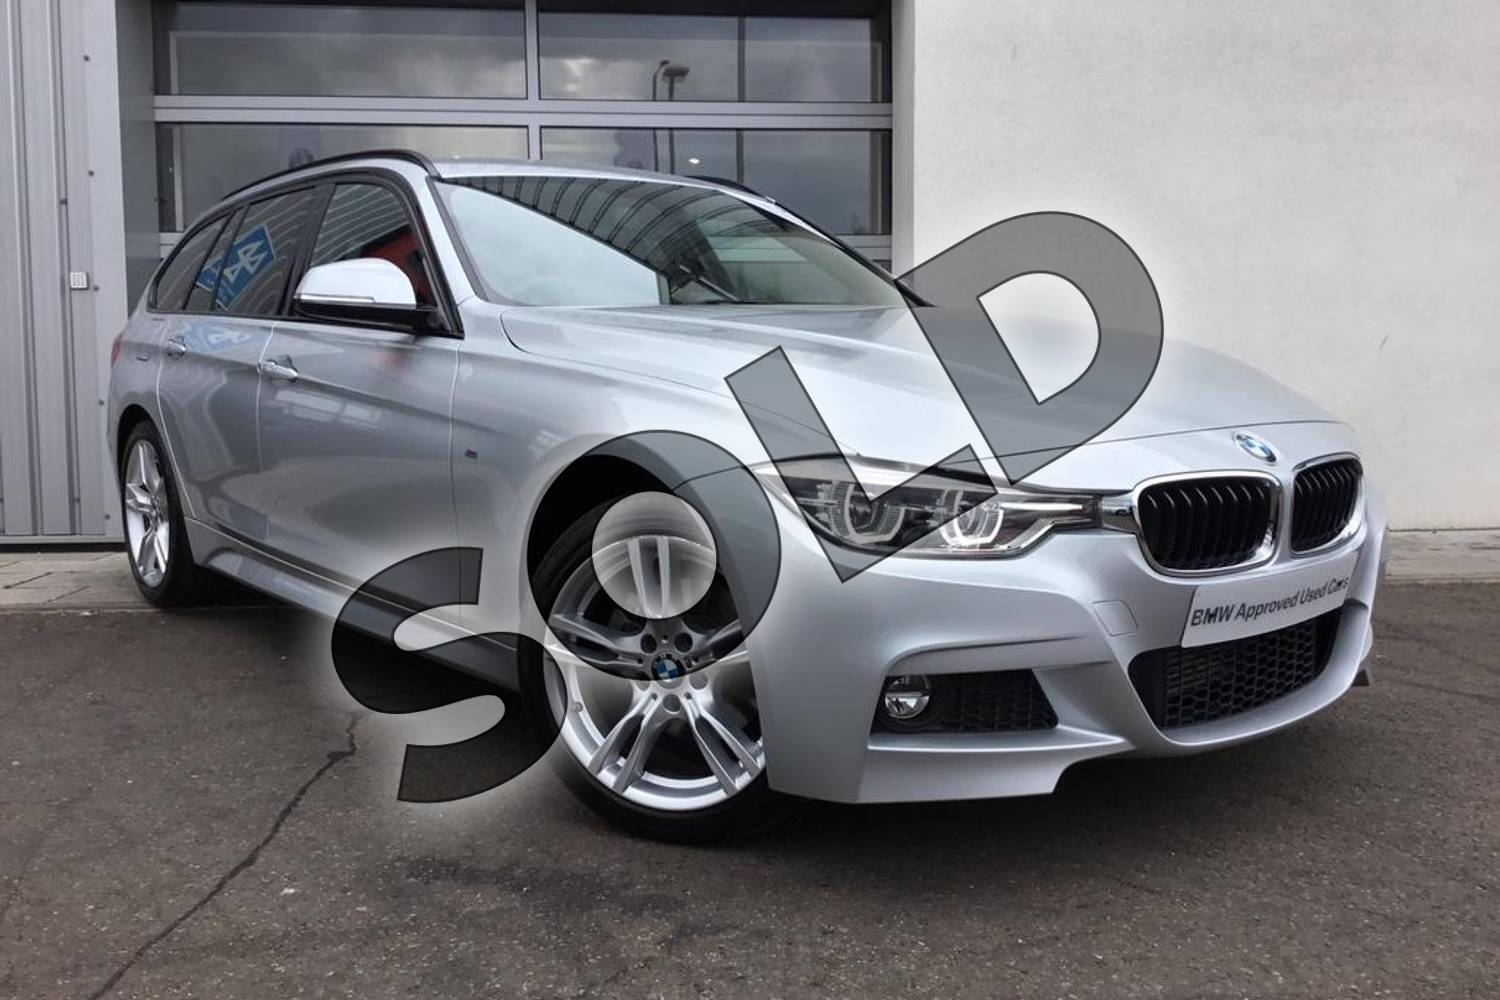 2018 BMW 3 Series Diesel Touring Diesel Touring 320d xDrive M Sport 5dr Step Auto in Glacier Silver at Listers King's Lynn (BMW)